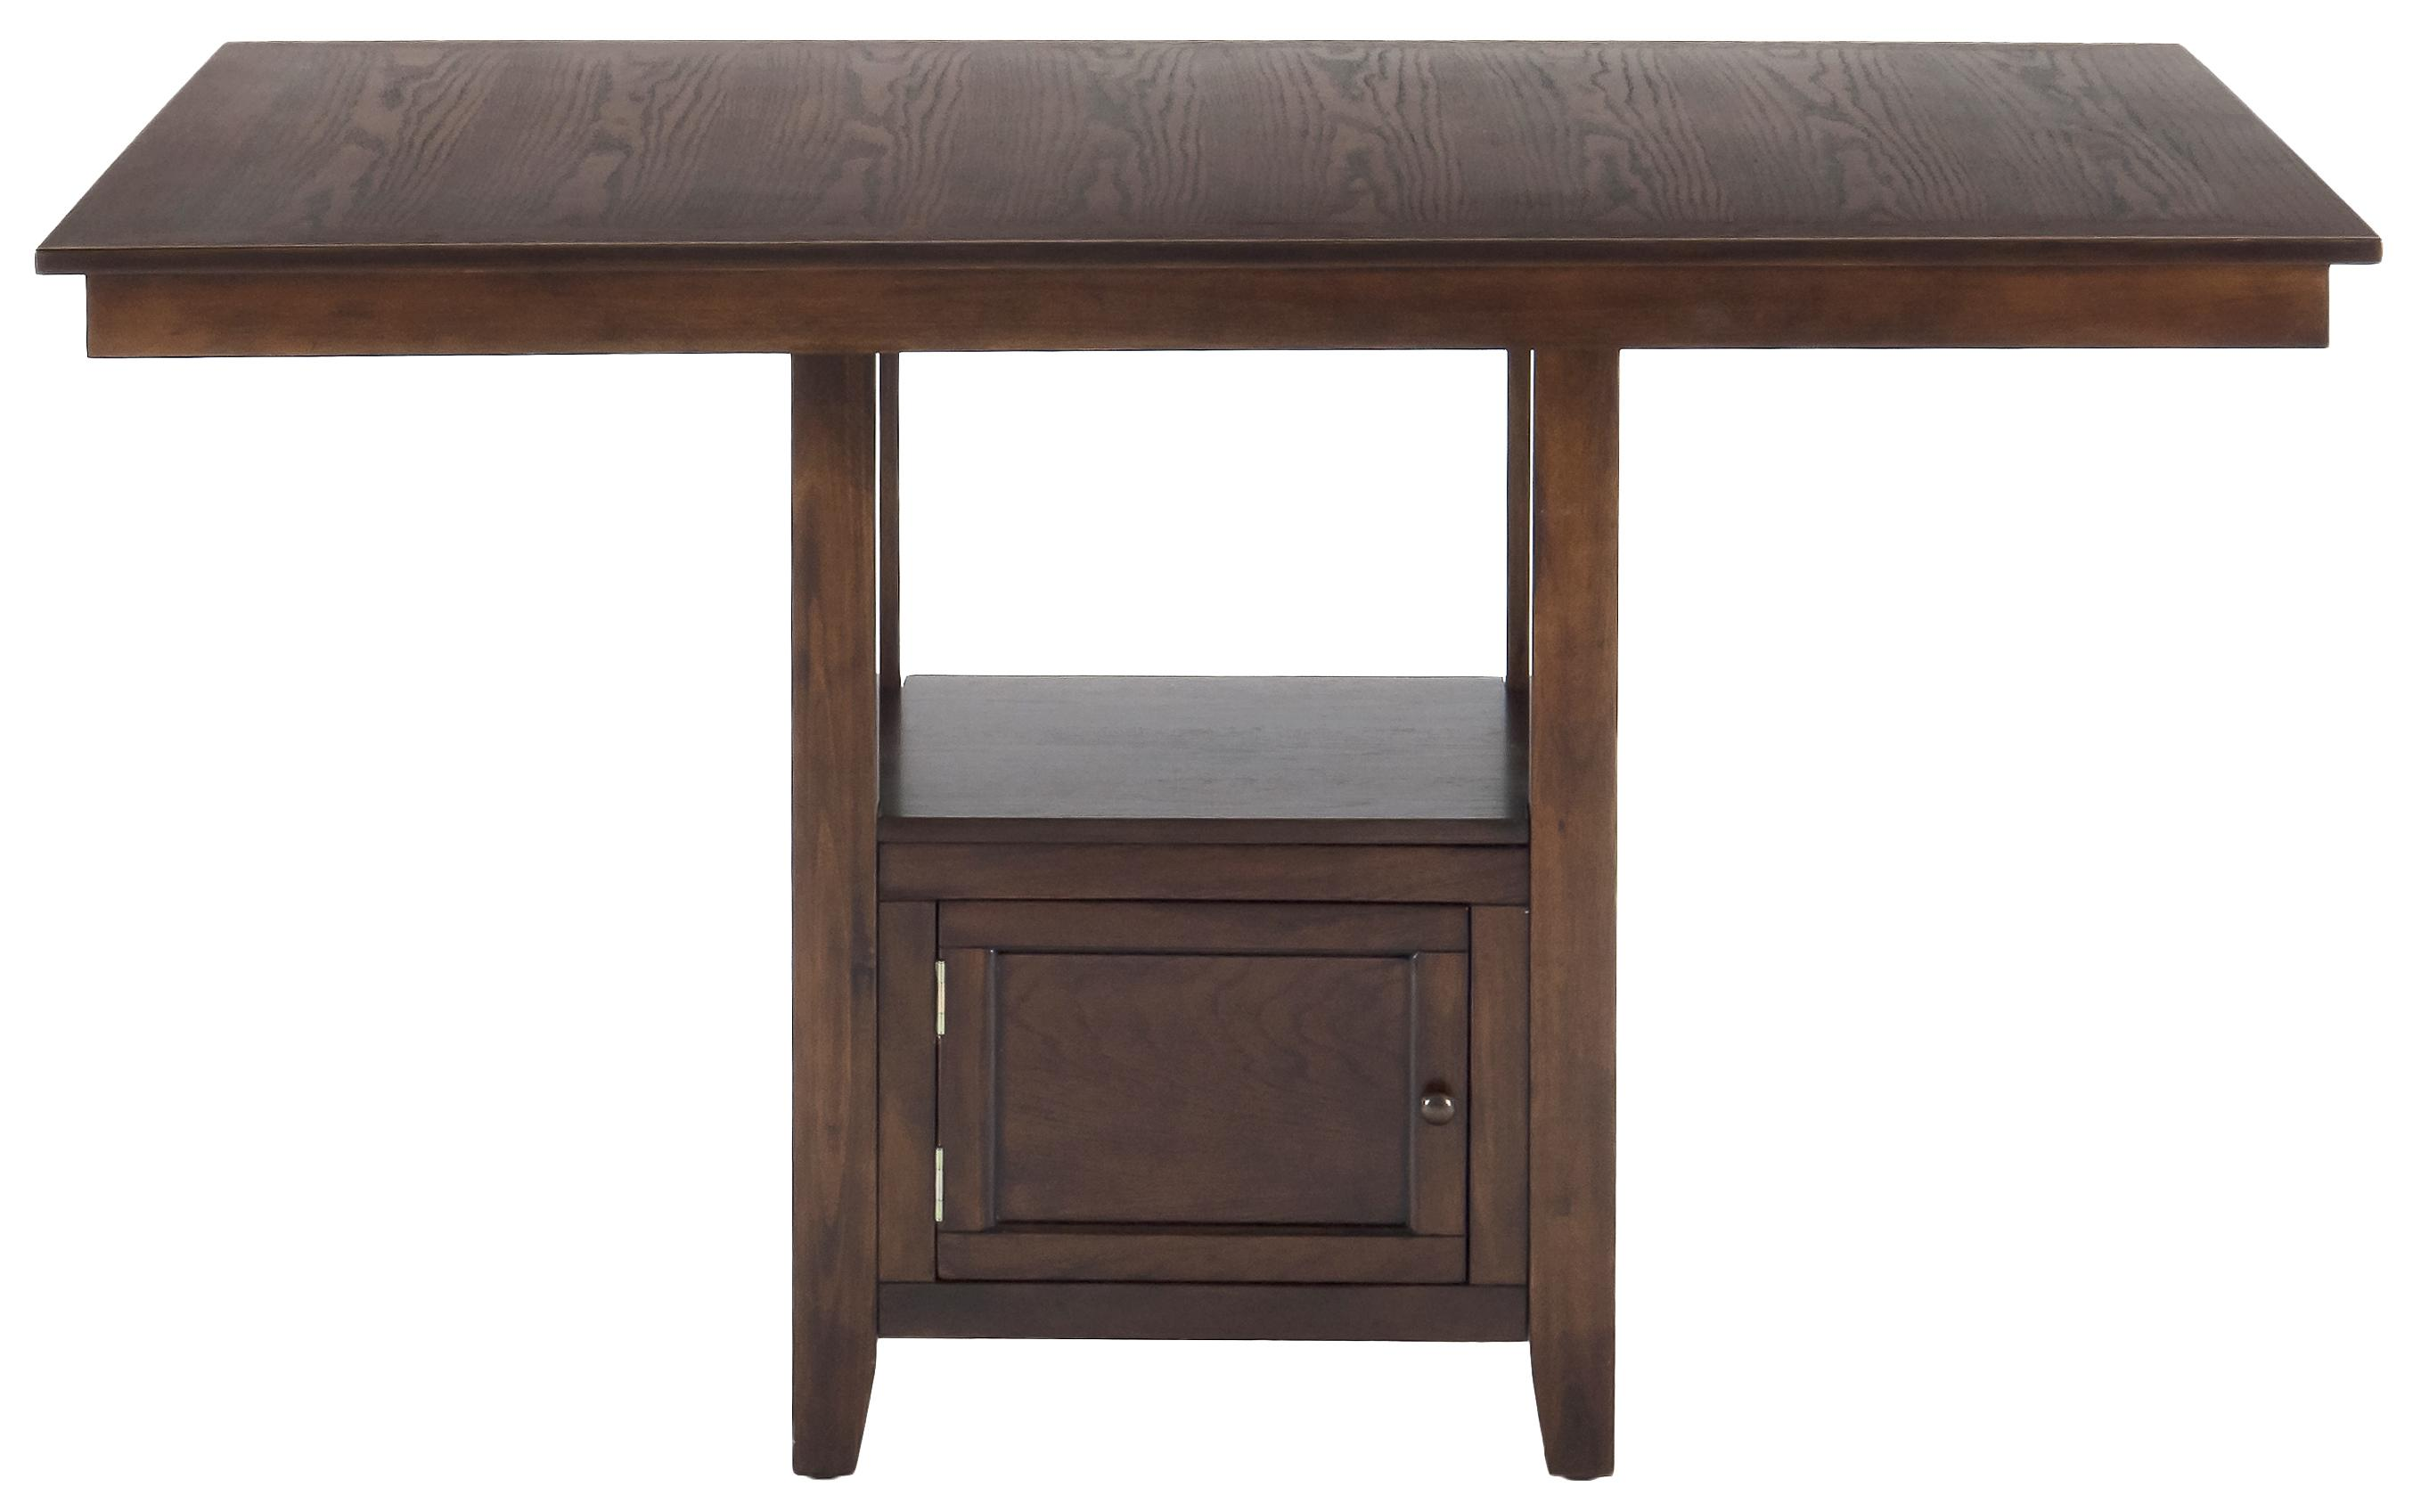 Jofran Olsen Oak Counter Height Table with Storage Base - Item Number: 439-60B+T